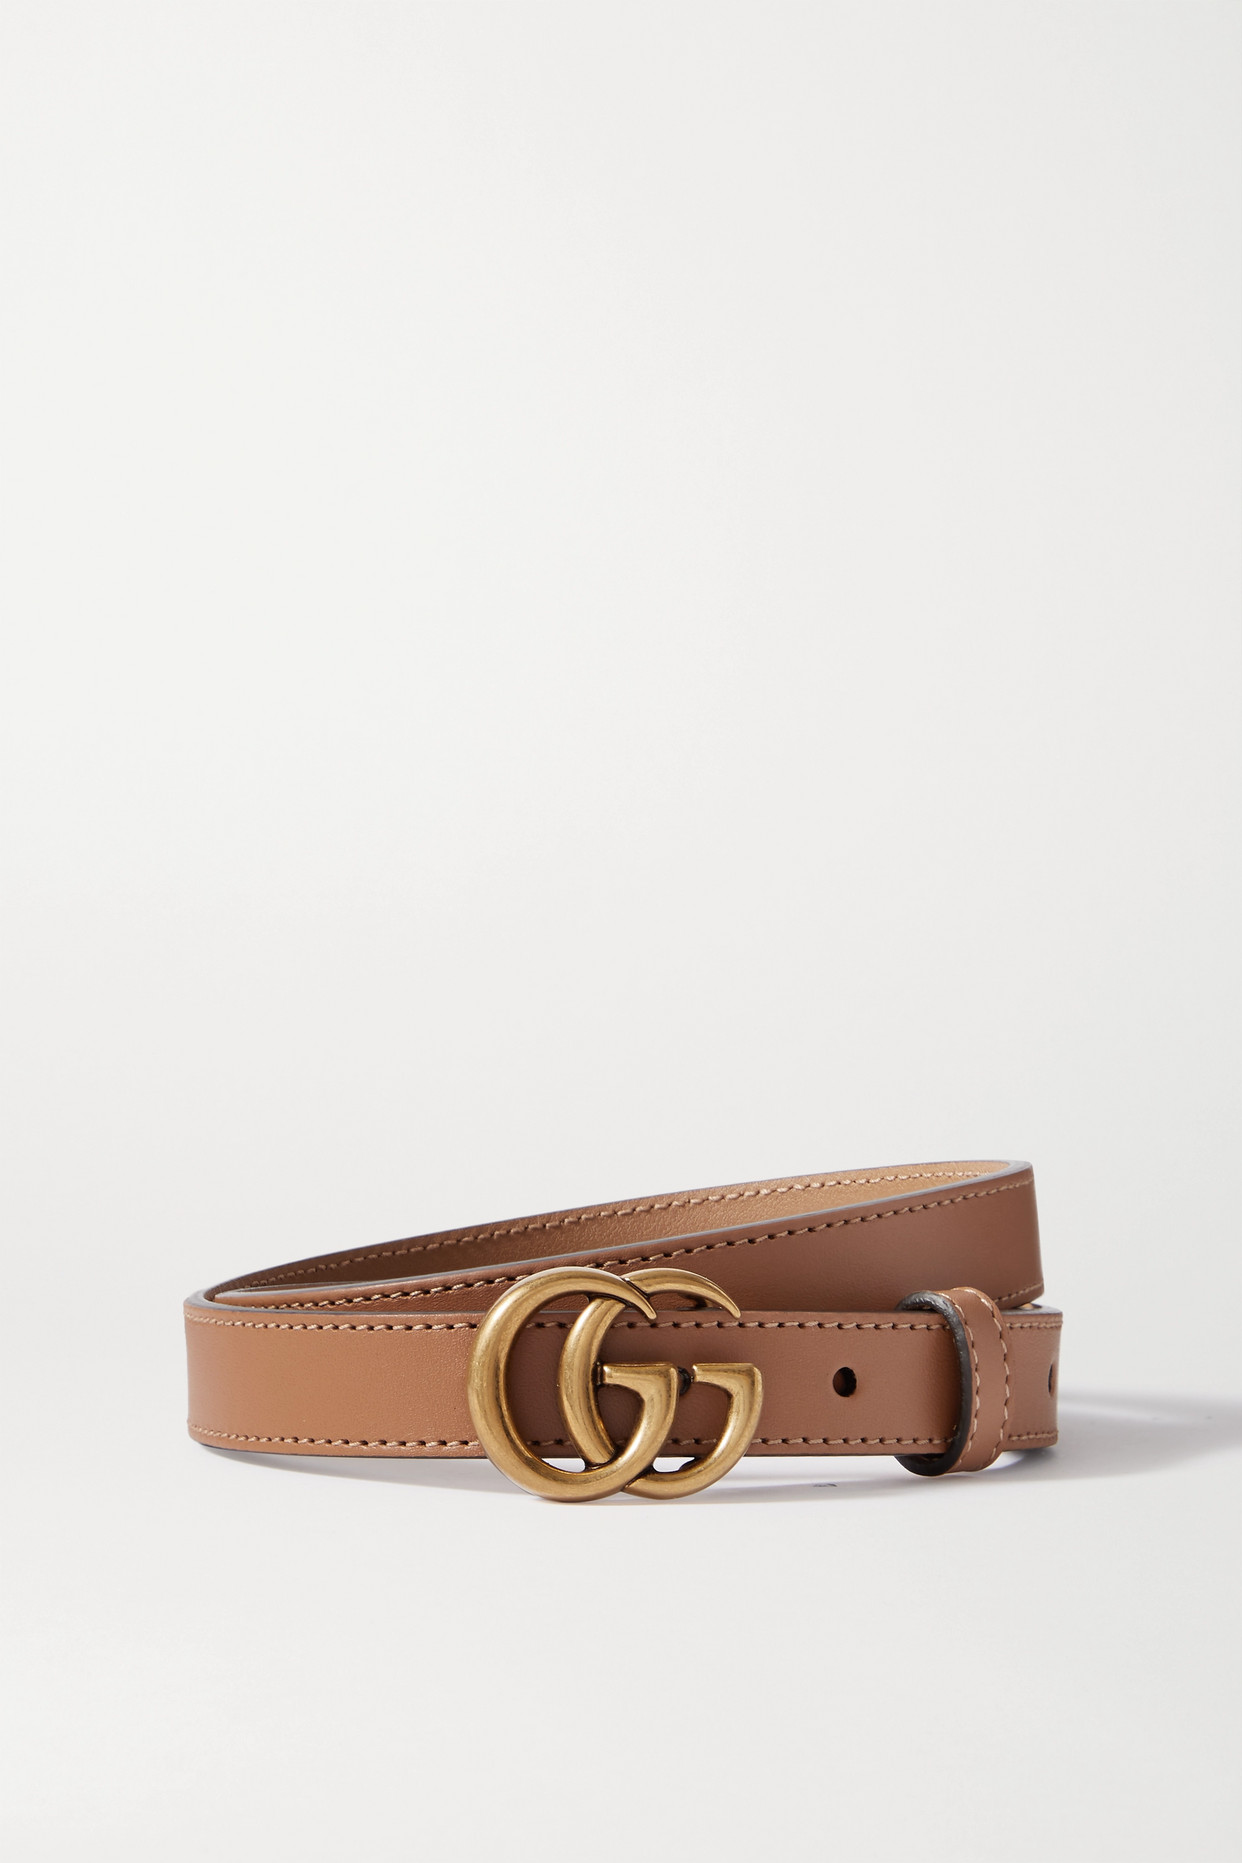 GUCCI - Leather Belt - Brown - 70